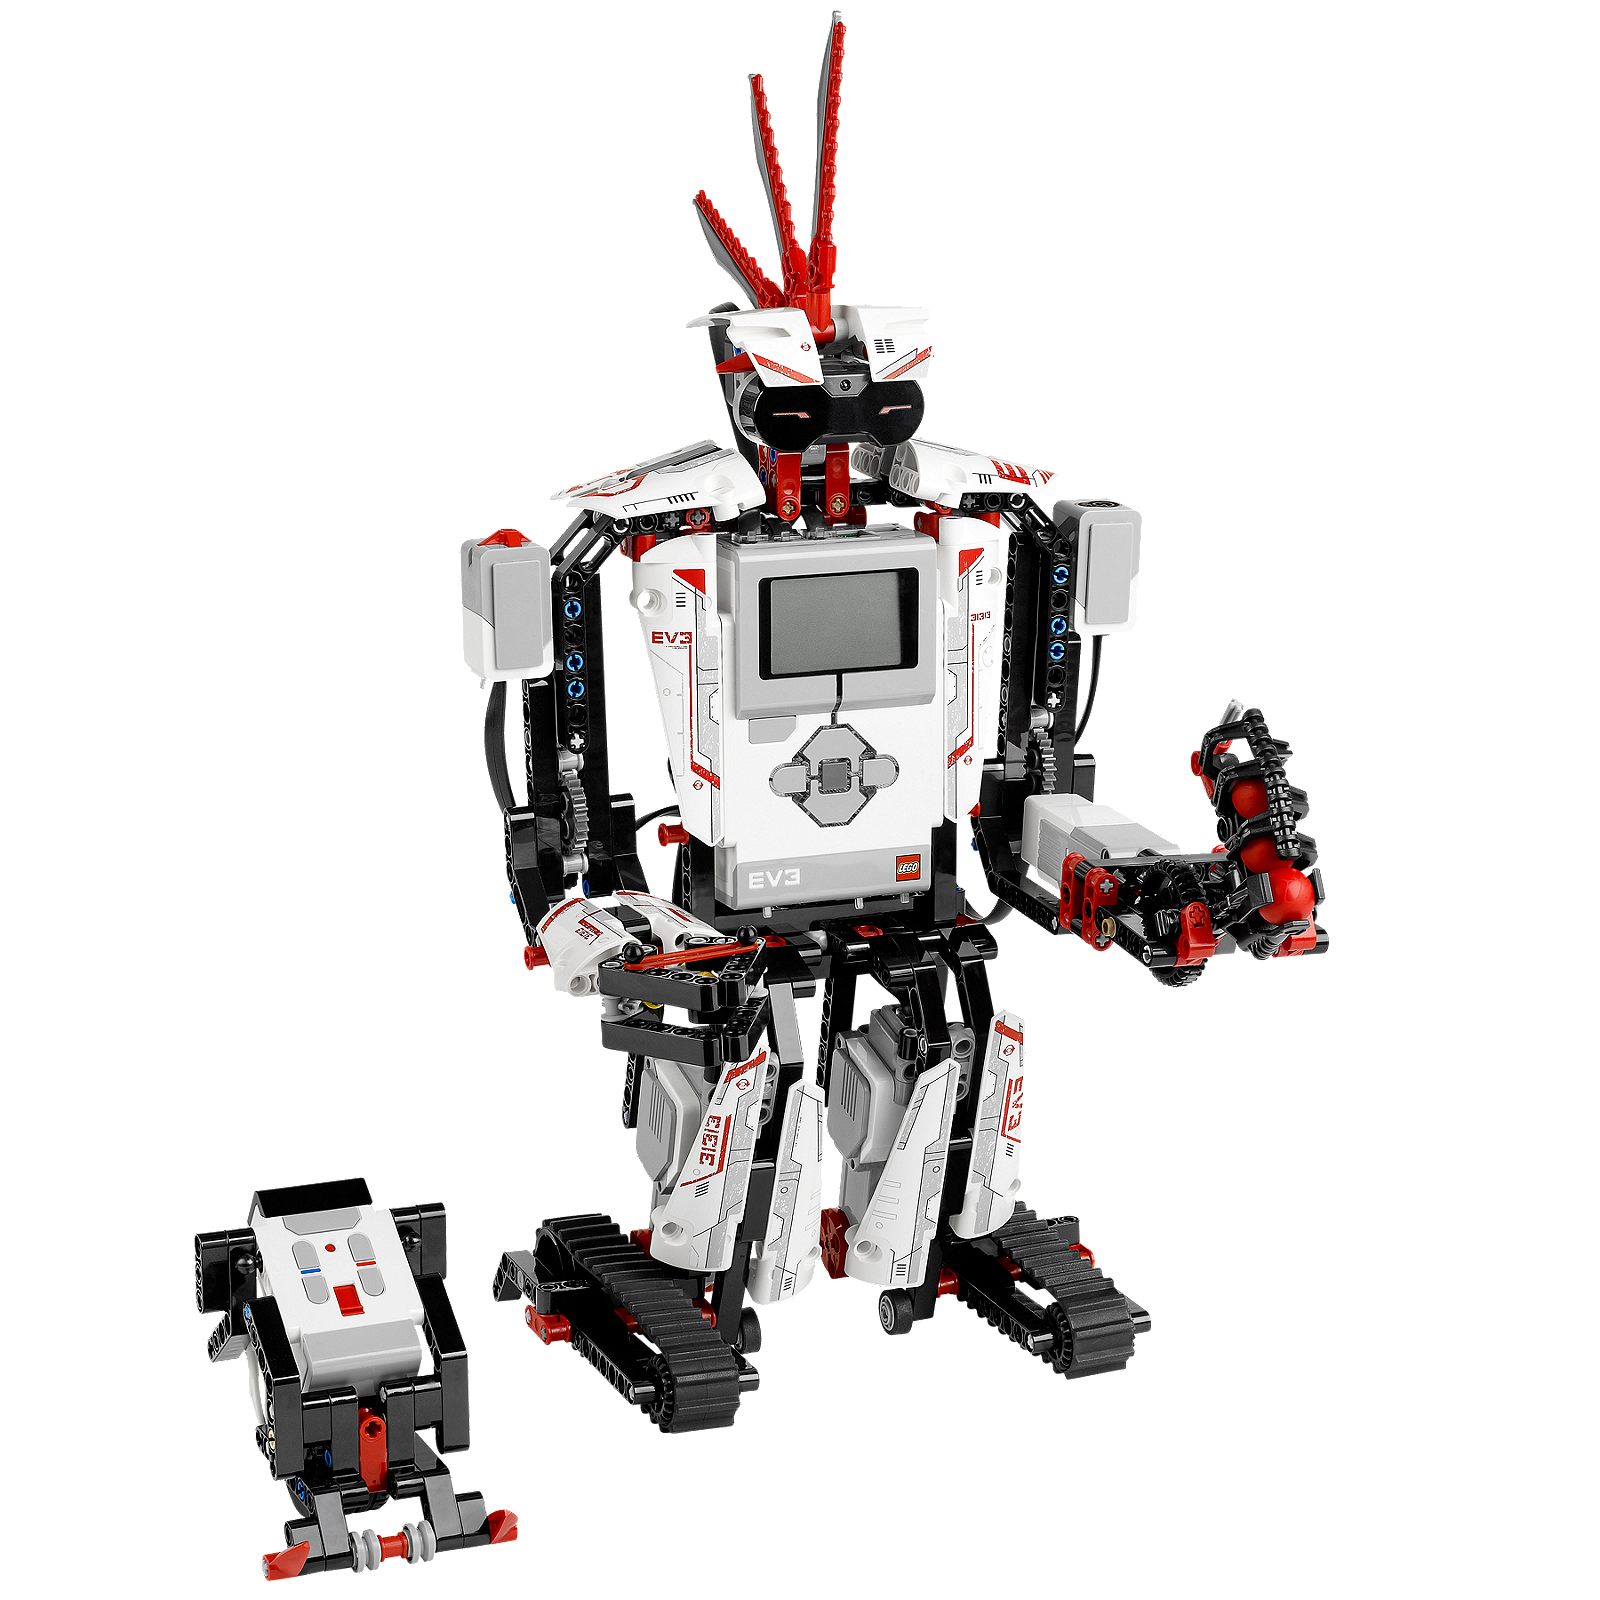 The lithium ion EV3 Rechargeable DC Battery is designed for use with the EV3 Intelligent Brick and features a capacity of mAh. It provides longer run time than AA batteries and can be charged without taking the model apart.